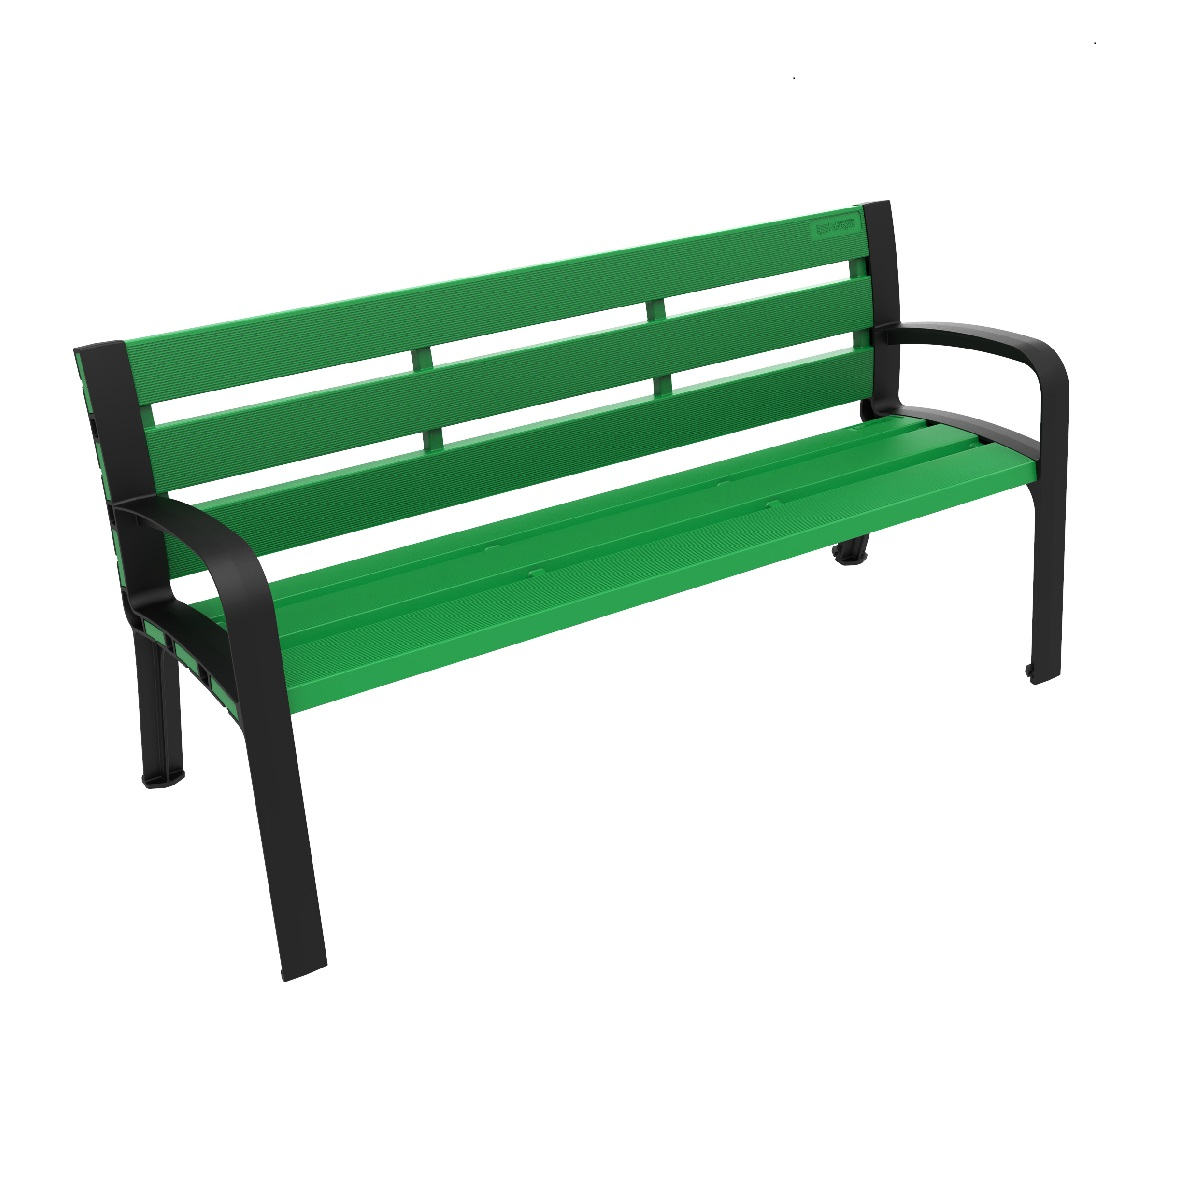 Modo Polypropylene Plastic Bench urban furniture to sit in parks and gardens